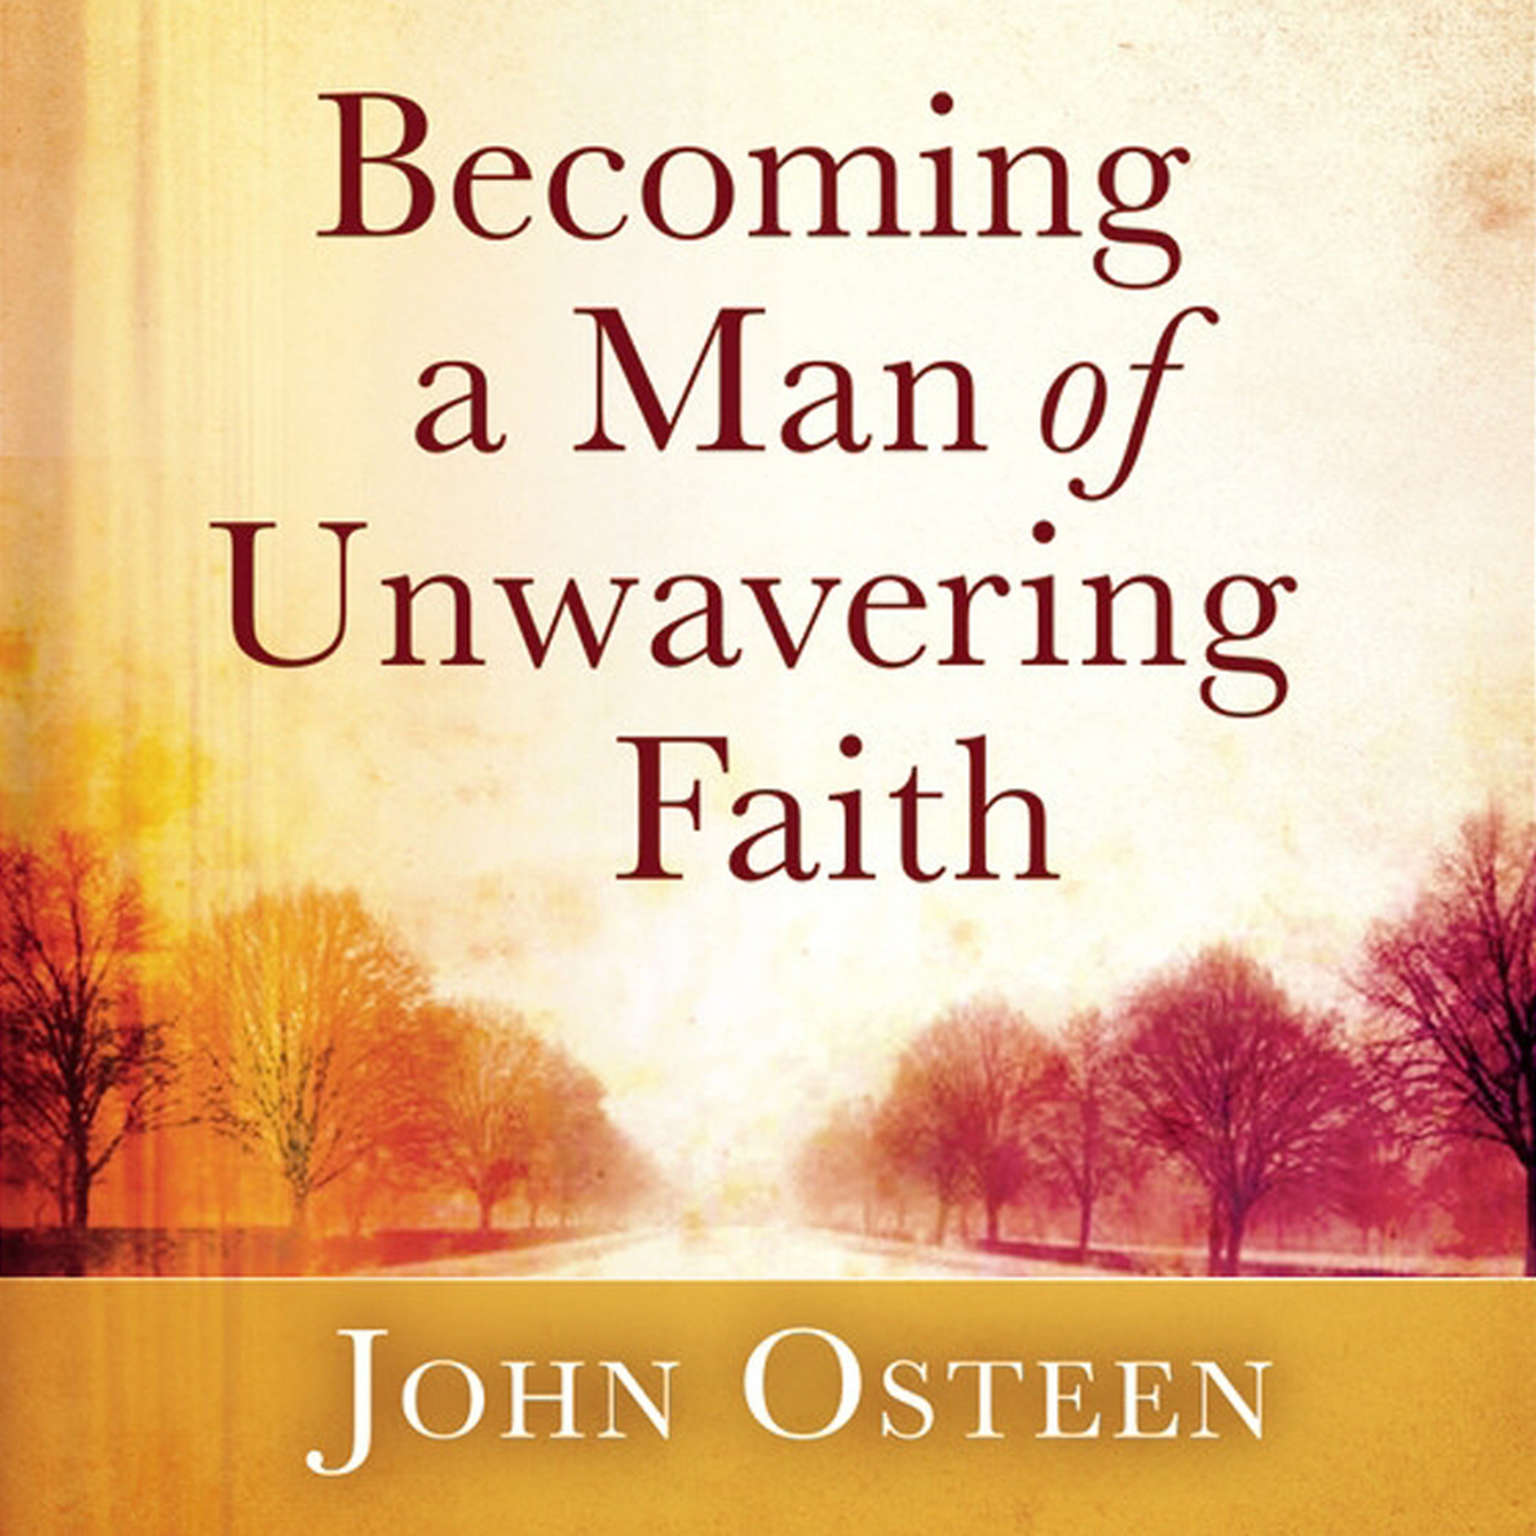 Printable Becoming a Man of Unwavering Faith Audiobook Cover Art